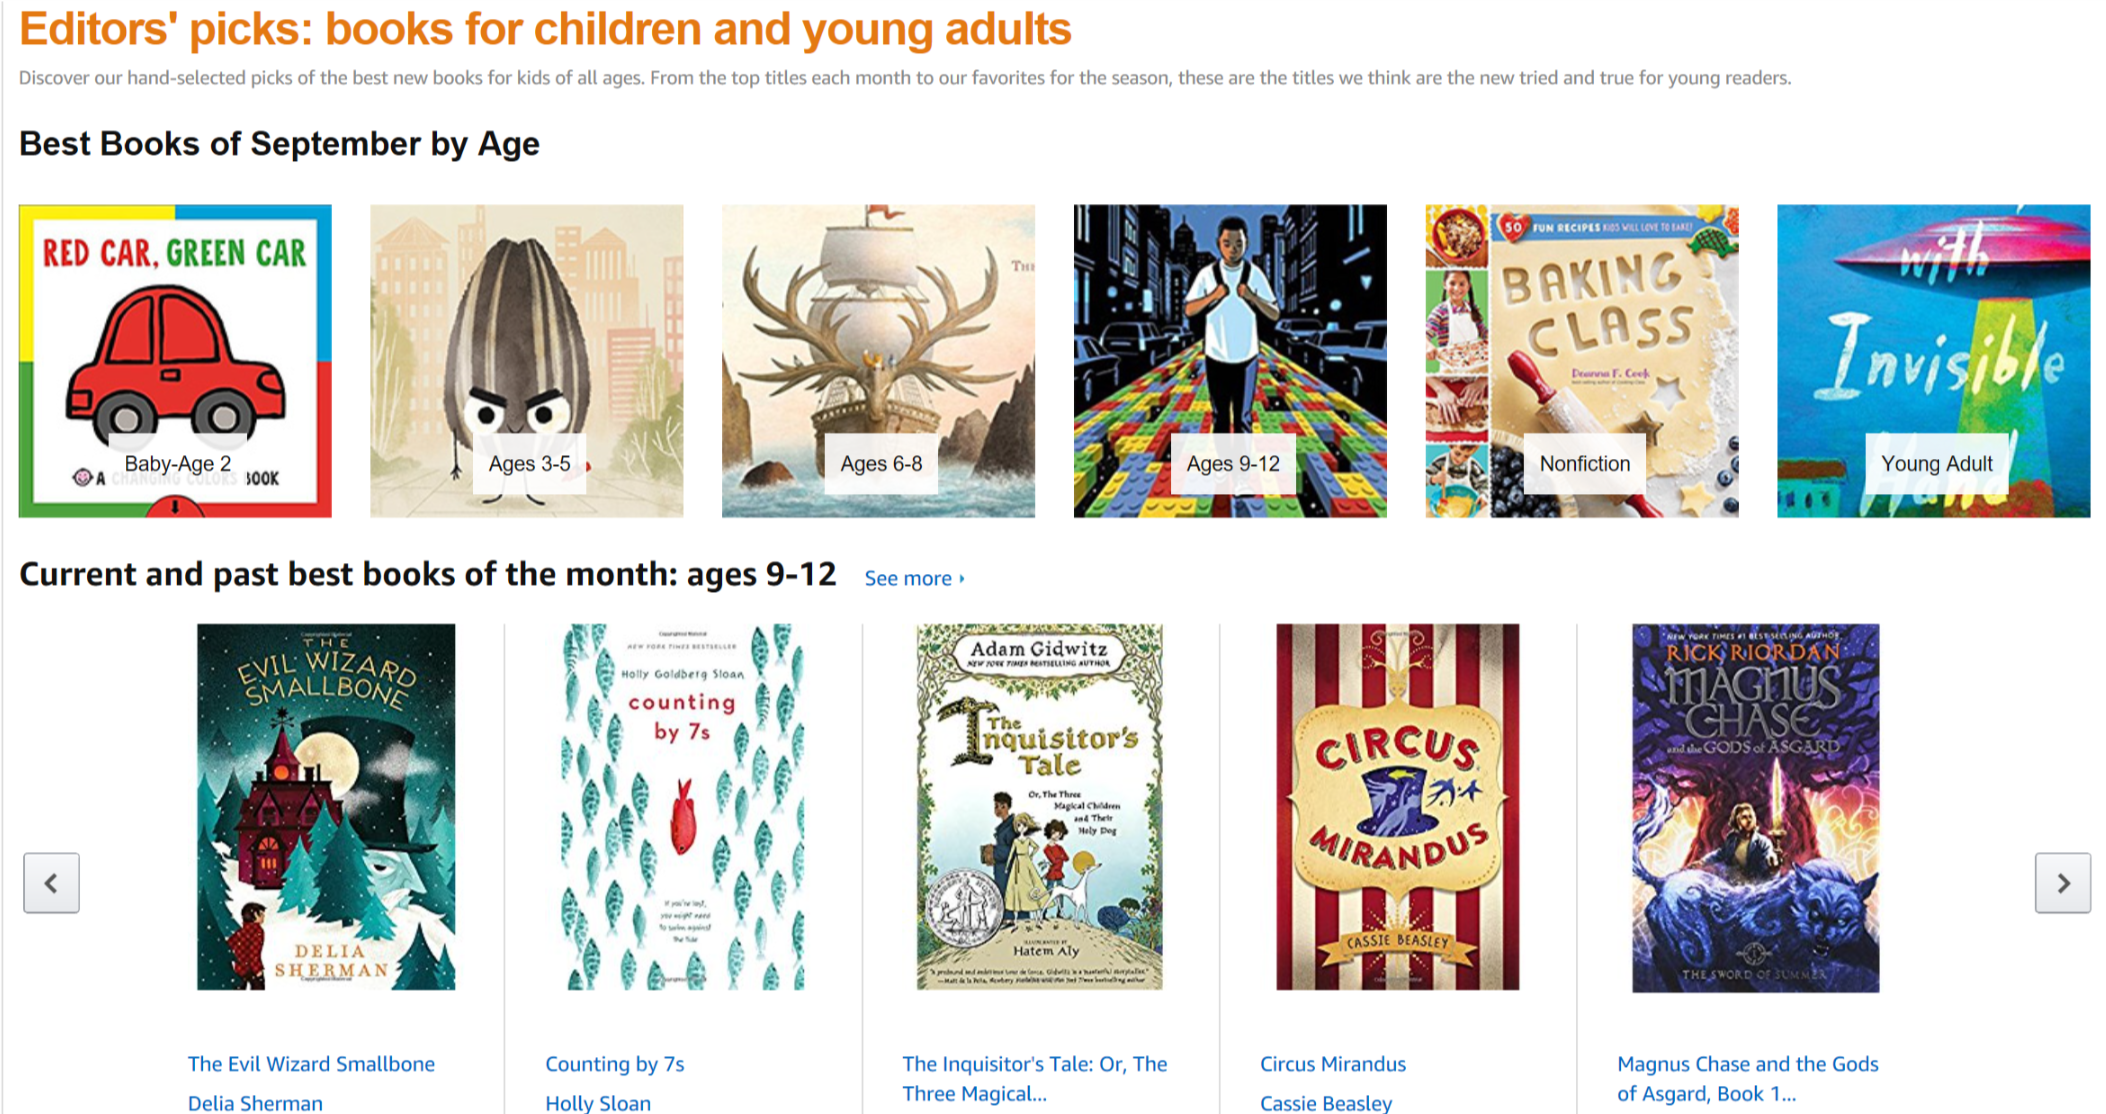 Best non fiction books for young adults — photo 15